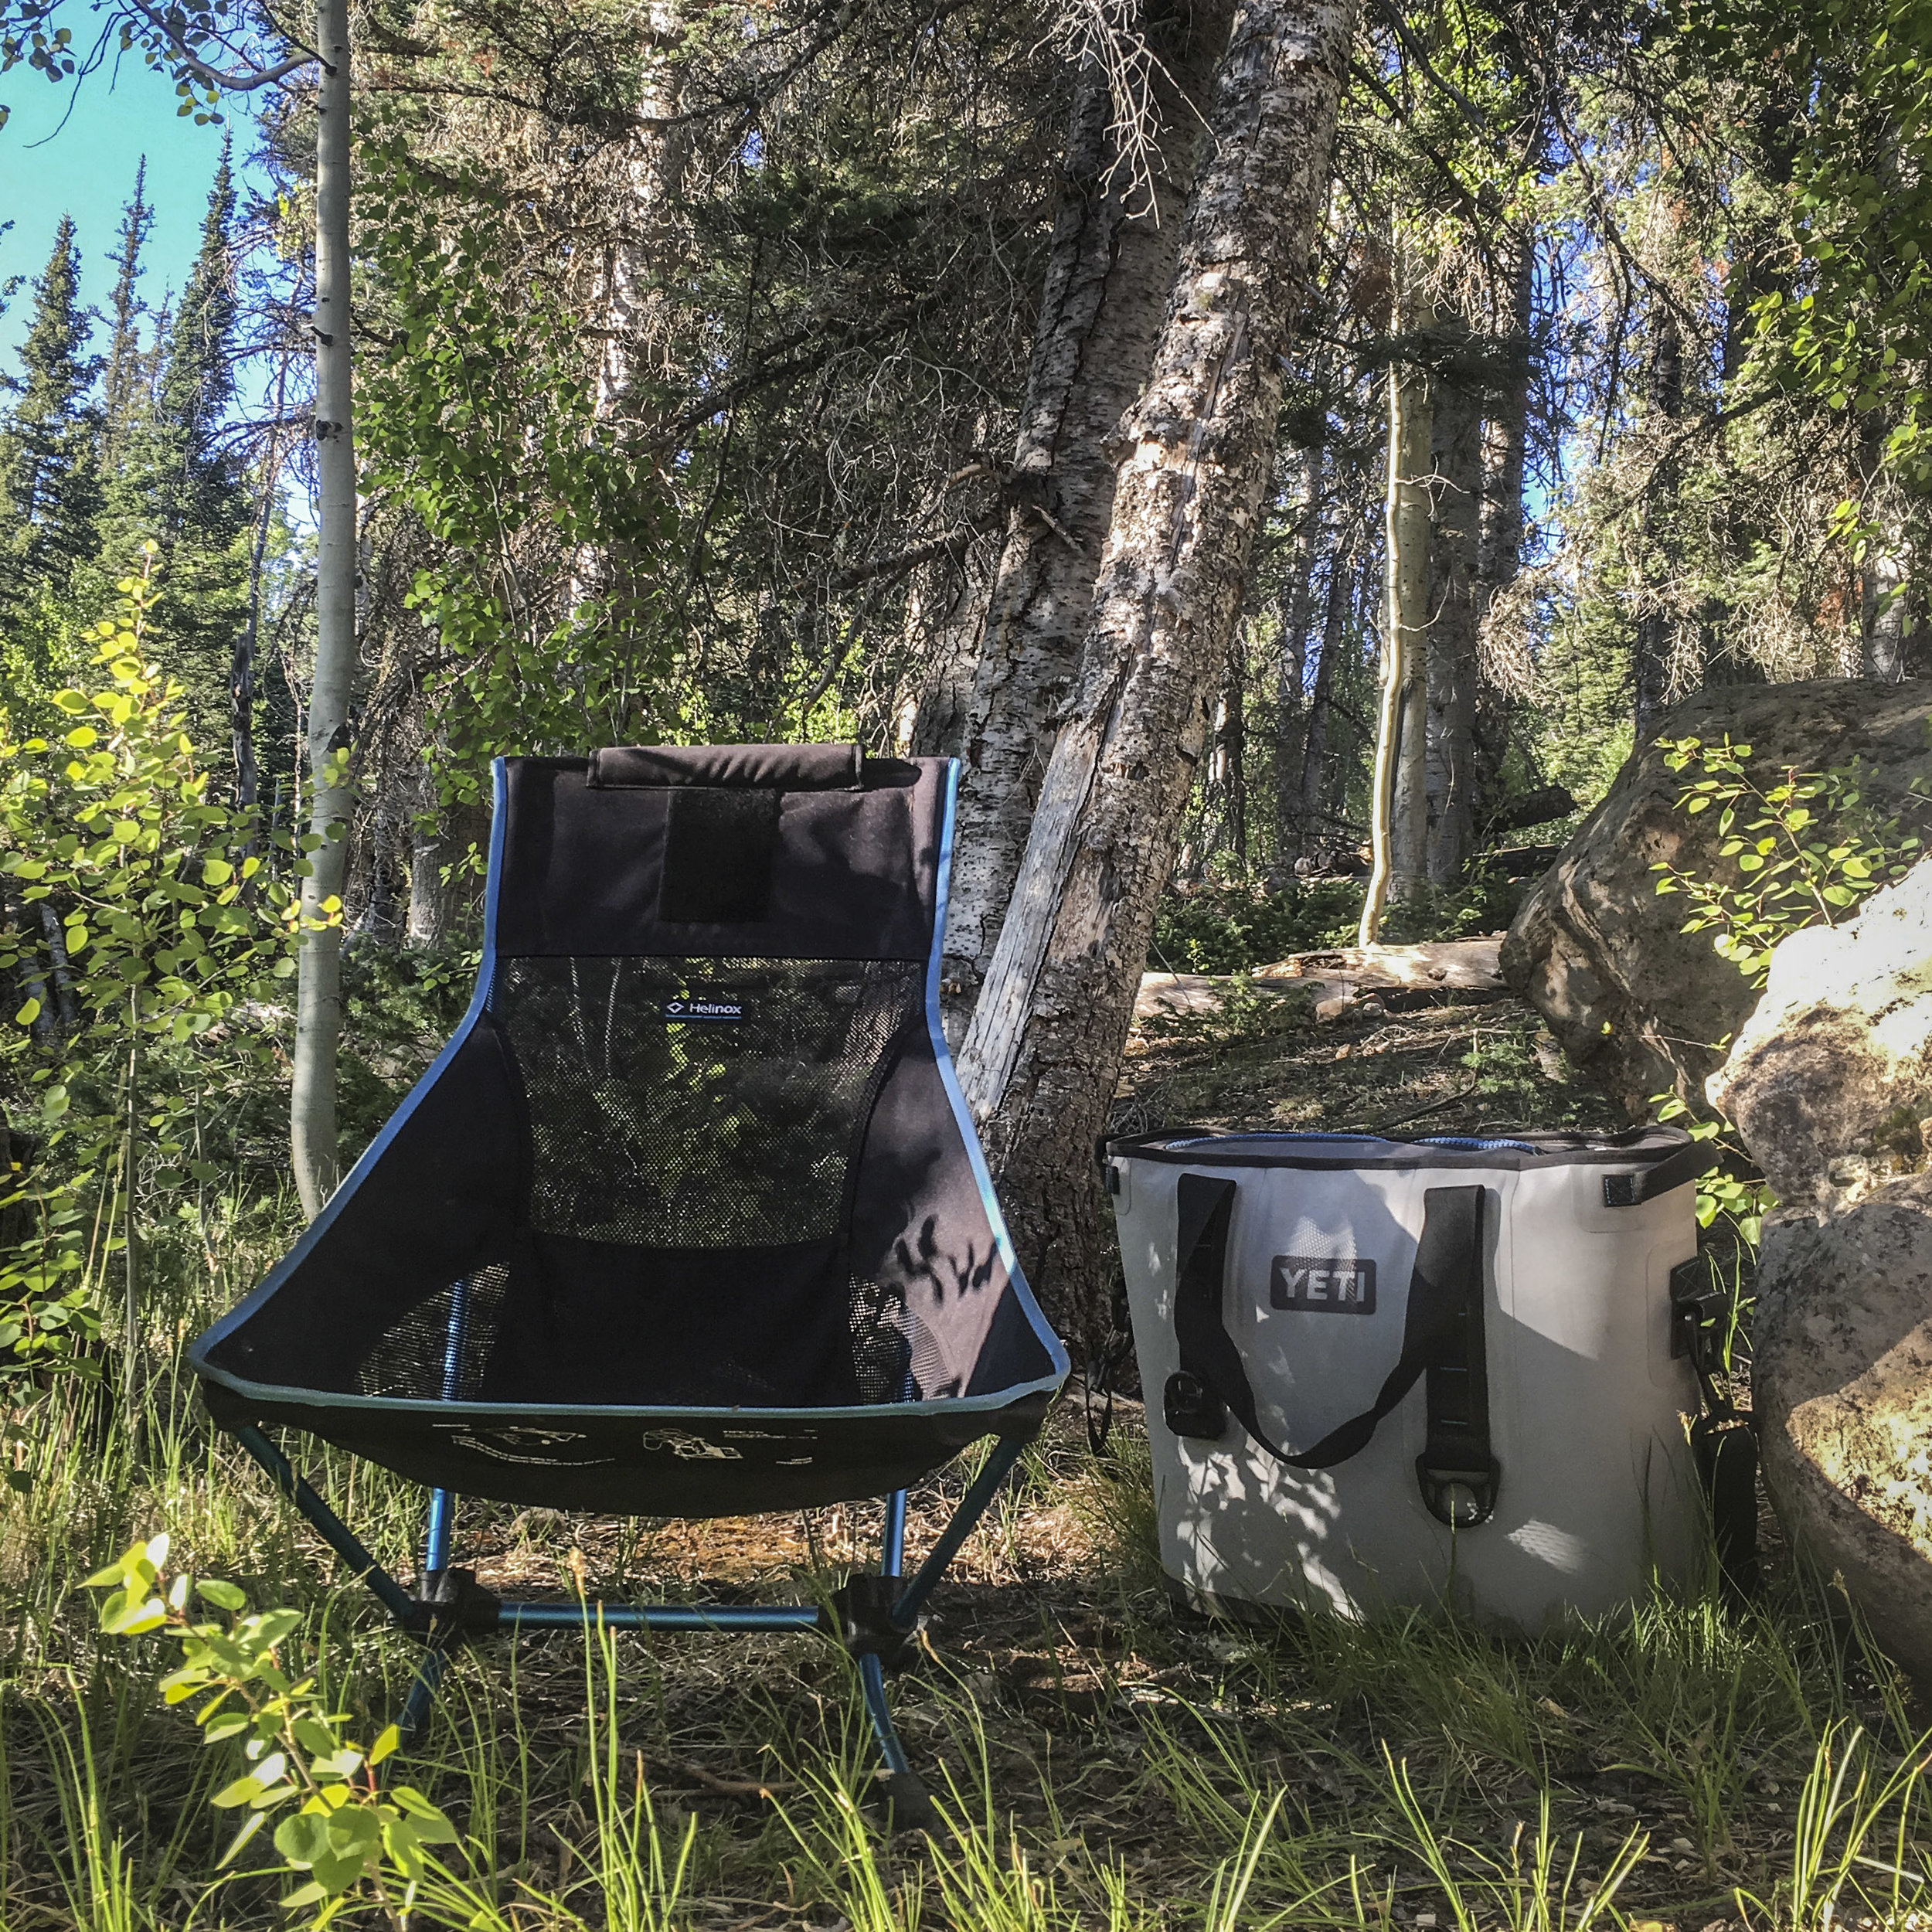 A highly portable cooler = luxury. (And my favorite camp chair, too :))